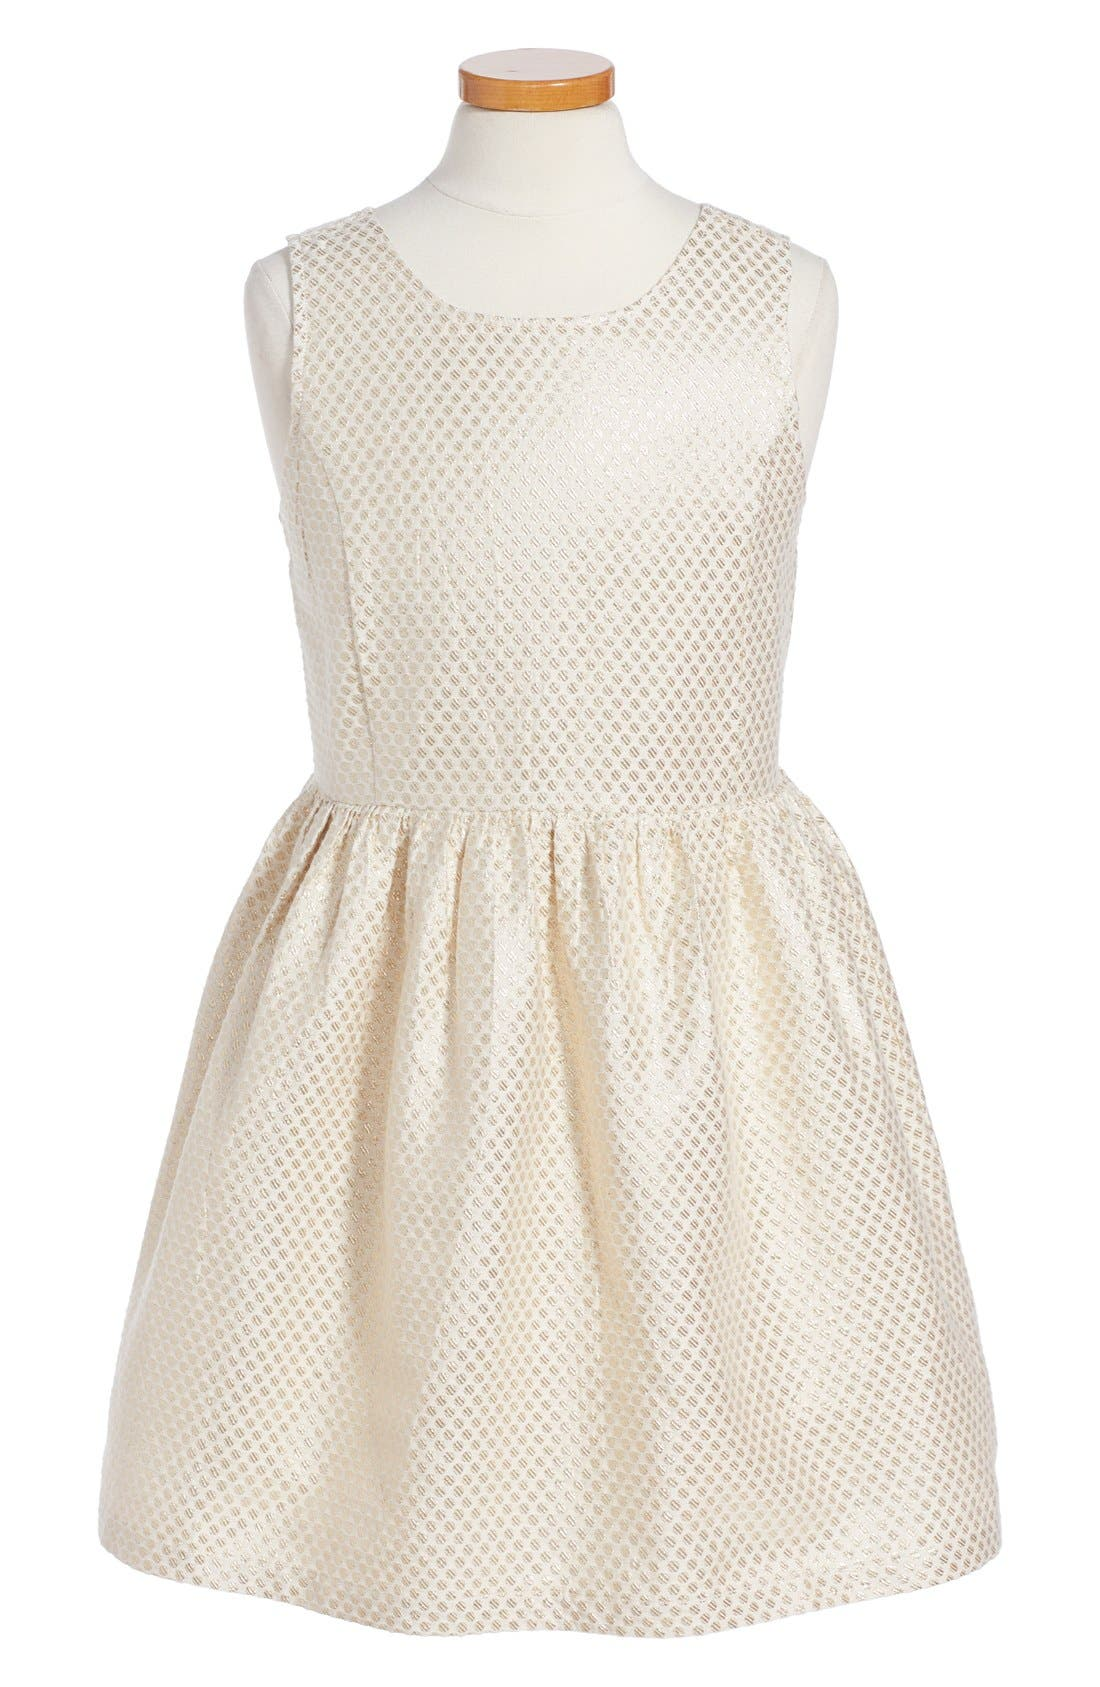 'Sophie' Metallic Dot Dress,                             Main thumbnail 1, color,                             Ivory Vanilla-Gold Dot